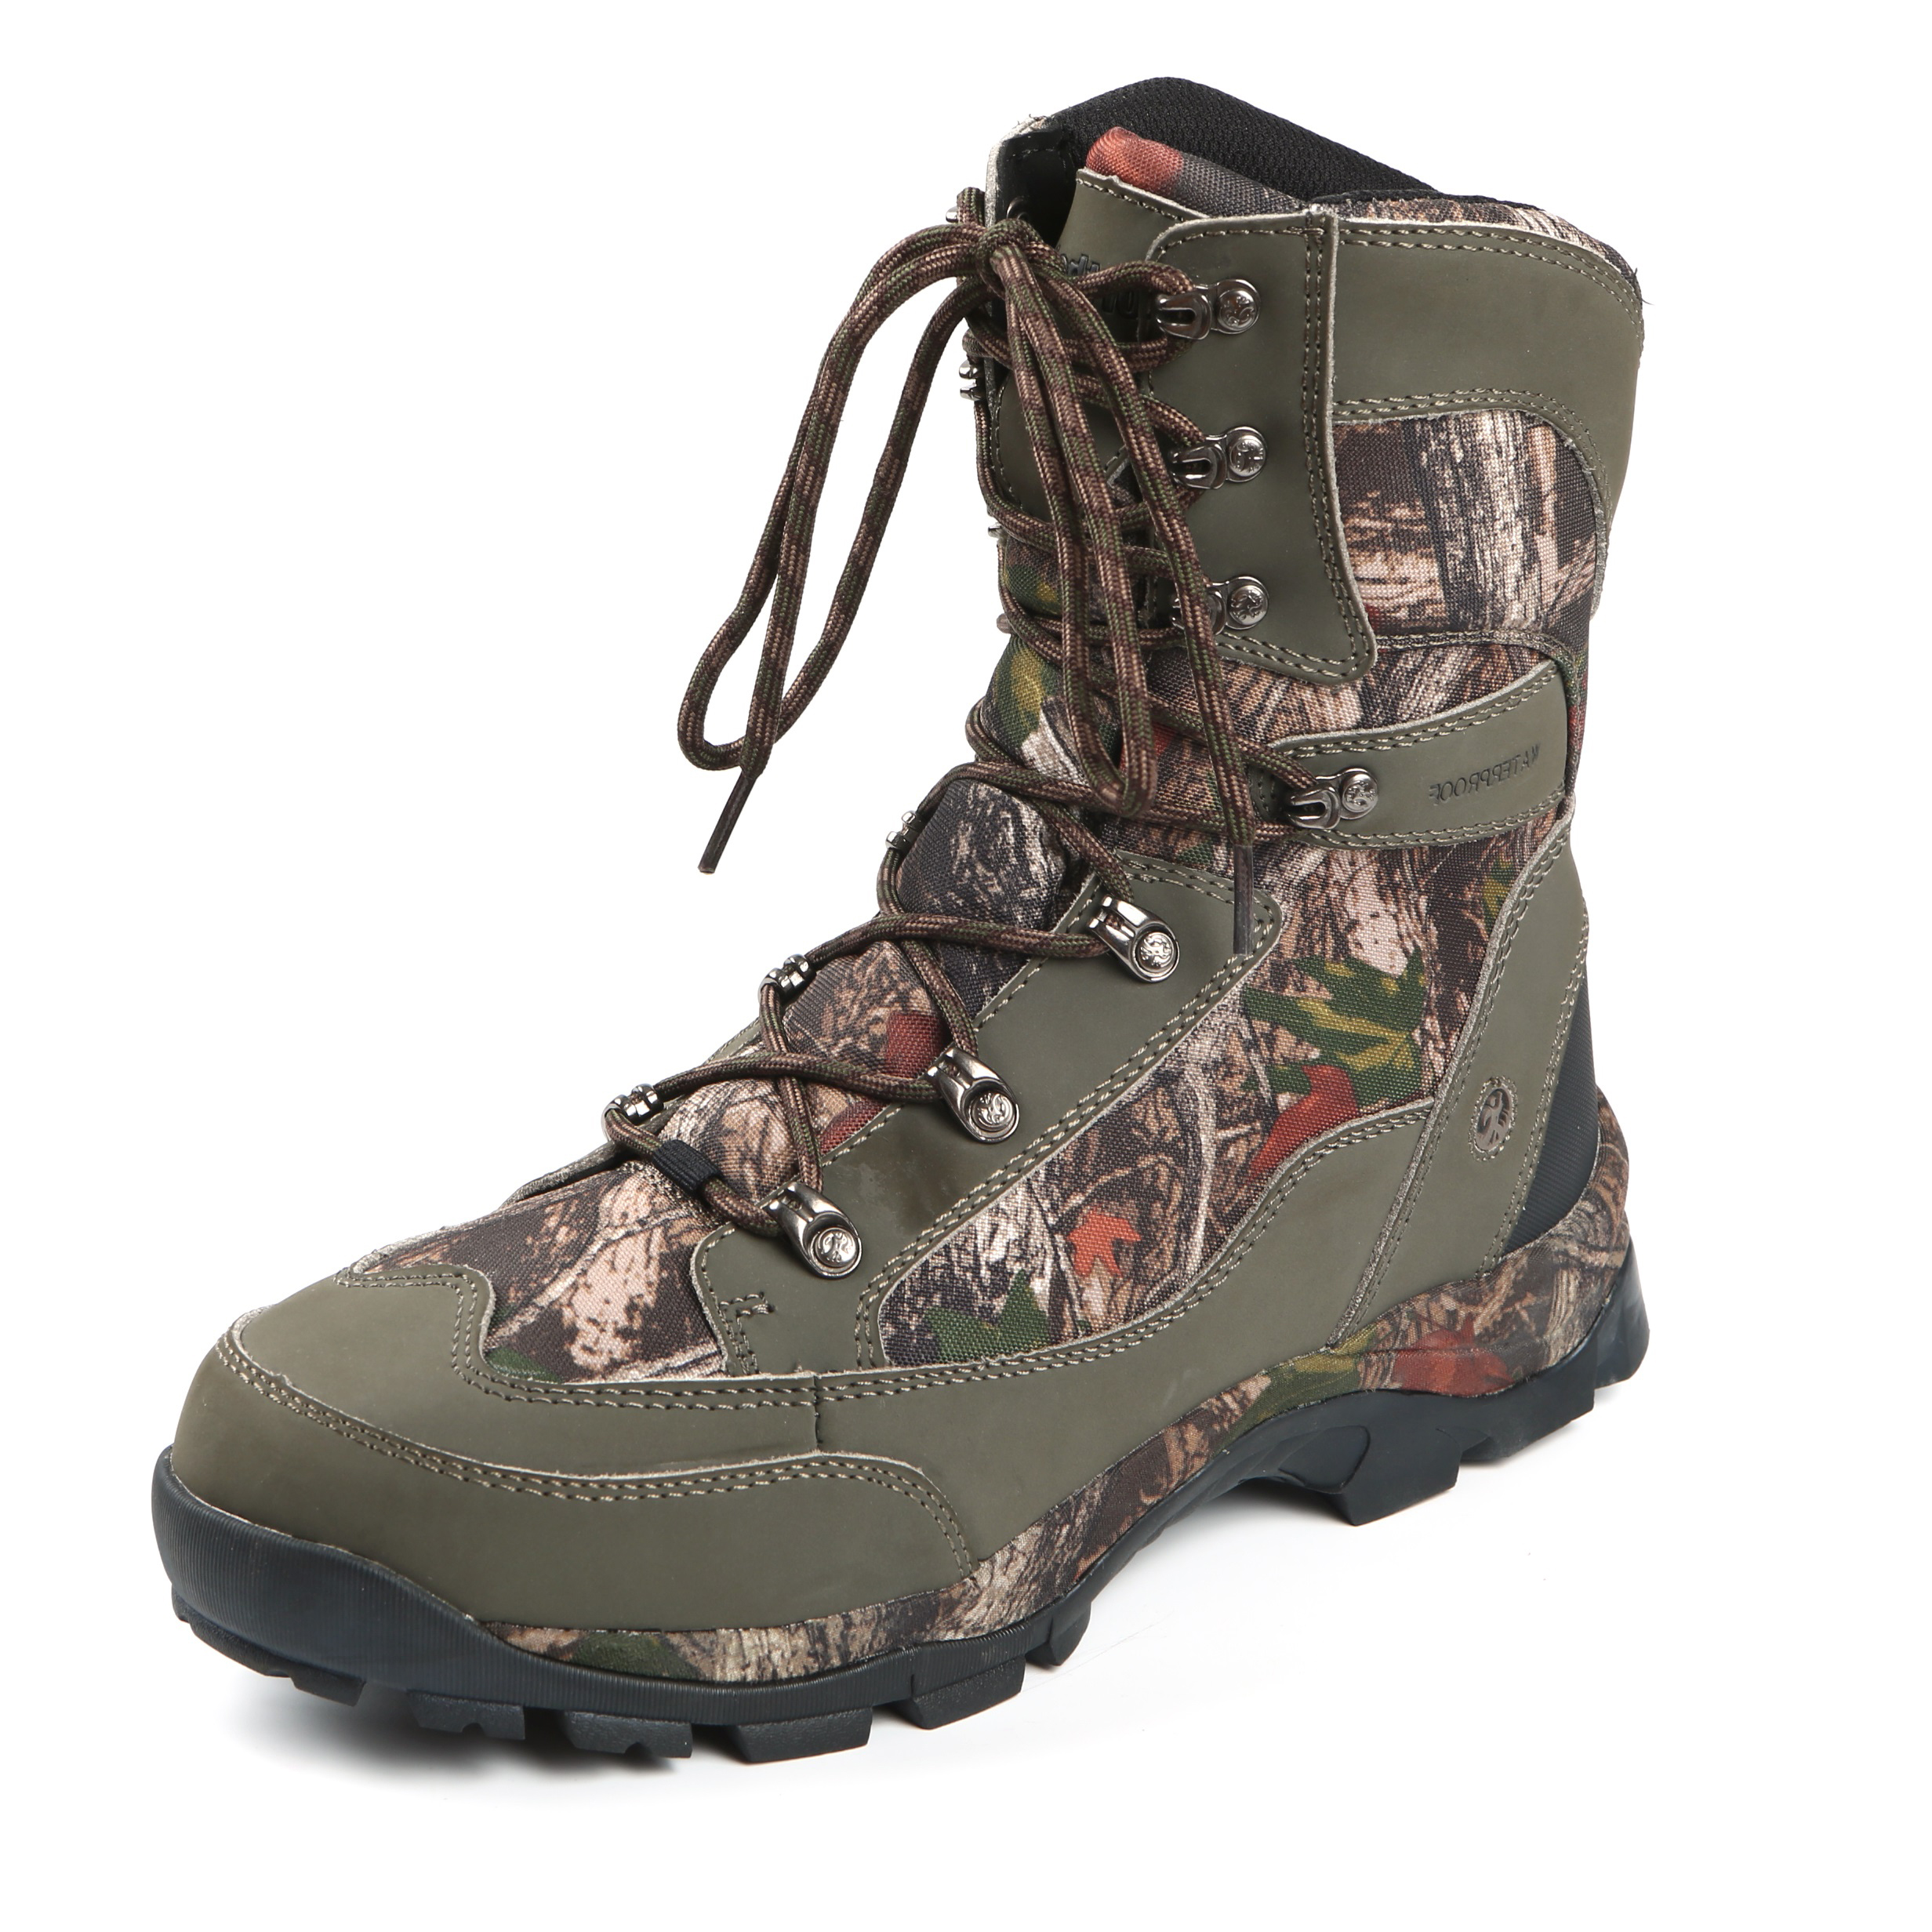 Northside Mens Buckman Waterproof Leather Hunting Winter Boot Camo